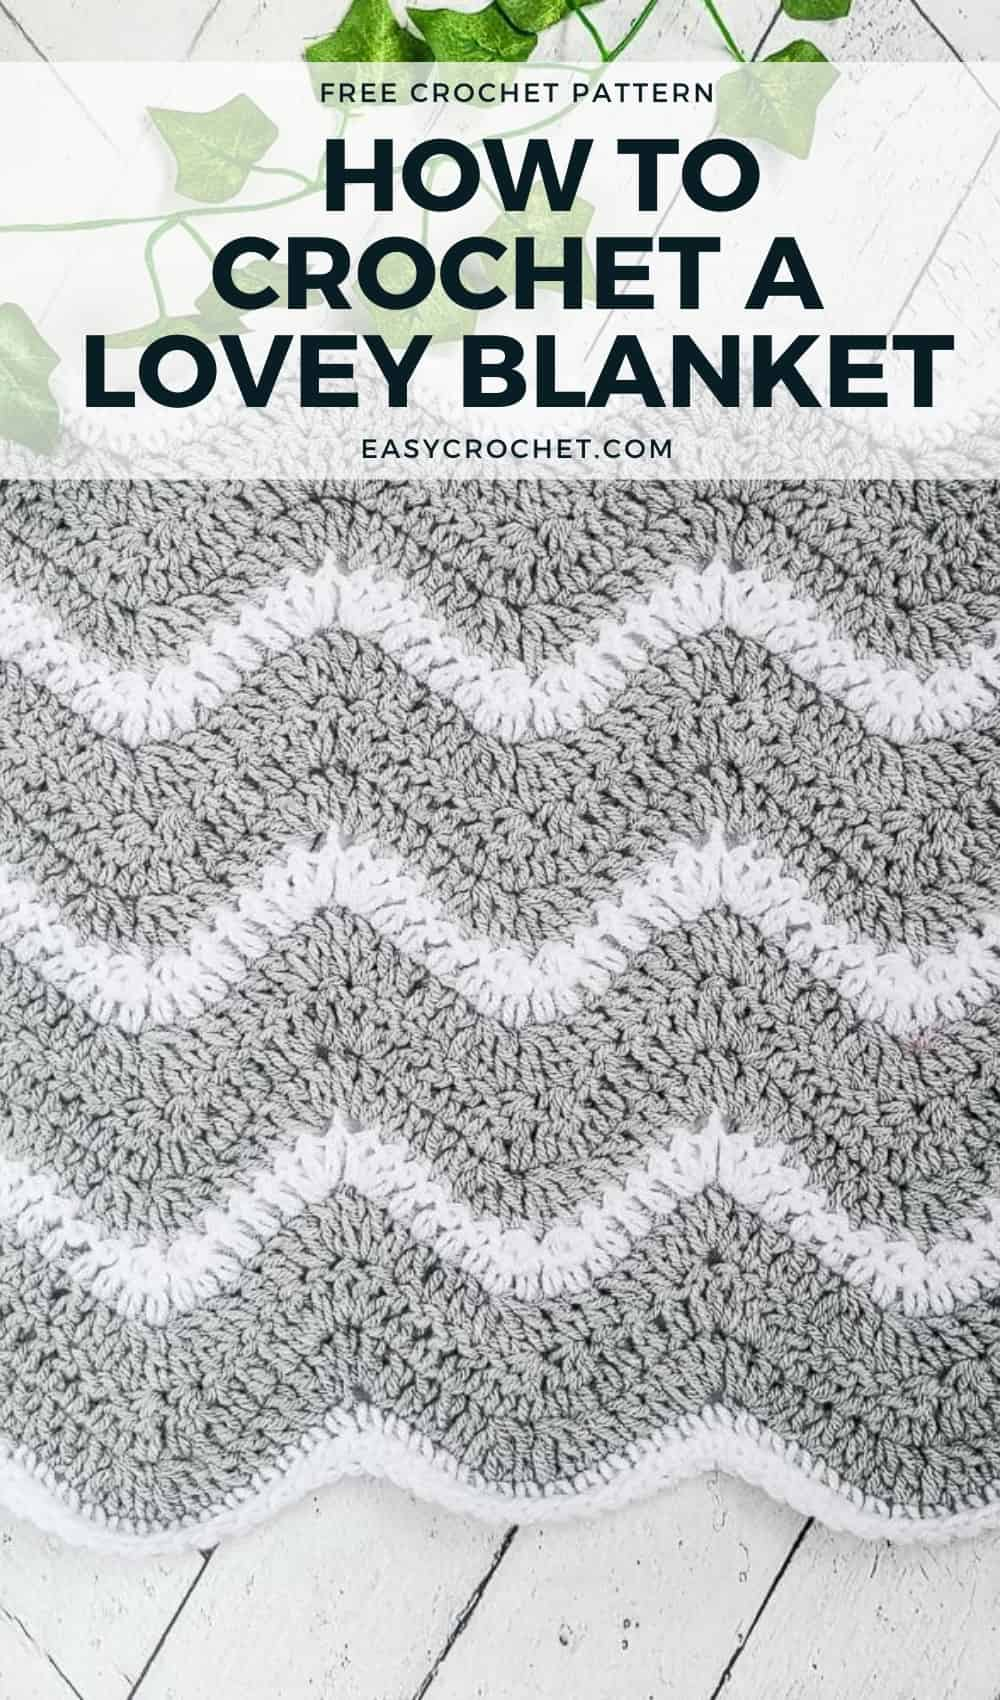 Free Lovey Crochet Blanket Pattern for a baby - Quick & easy baby blanket pattern that makes a great baby shower gift! via @easycrochetcom